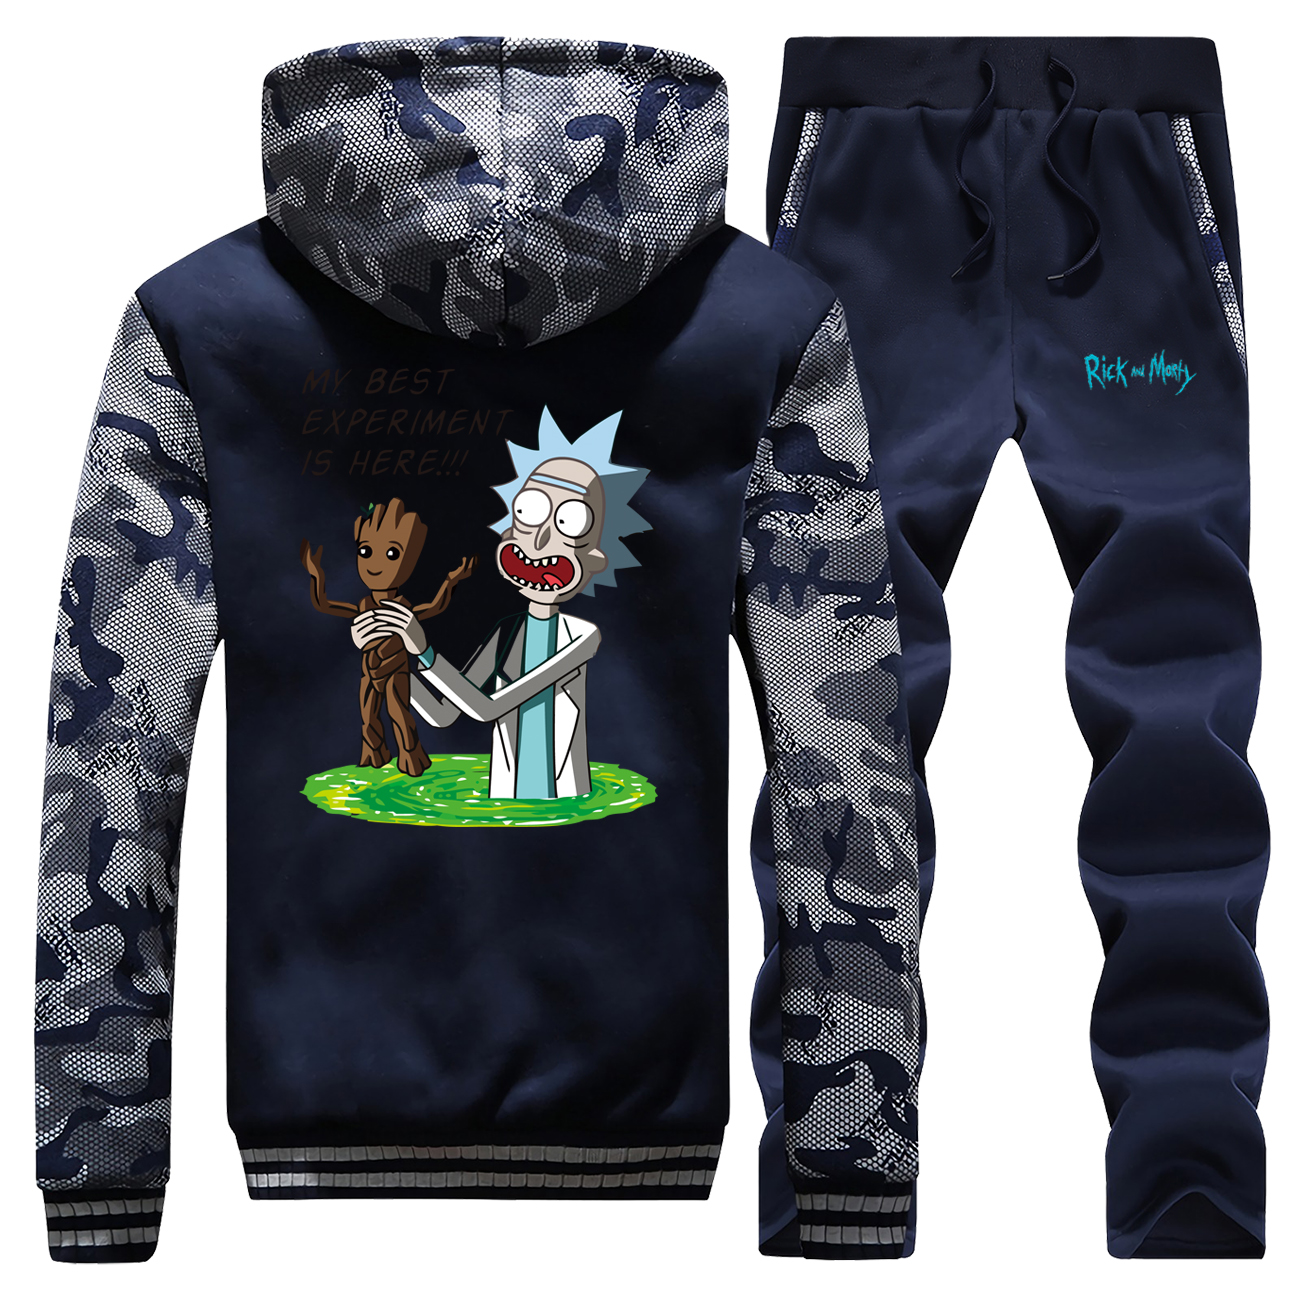 Funny Hoodies Pants Set Men Rick And Groot Tracksuit CoatMy Best Experiment Is Here Winter Thick Fleece Jacket Camo 2 Piece Sets